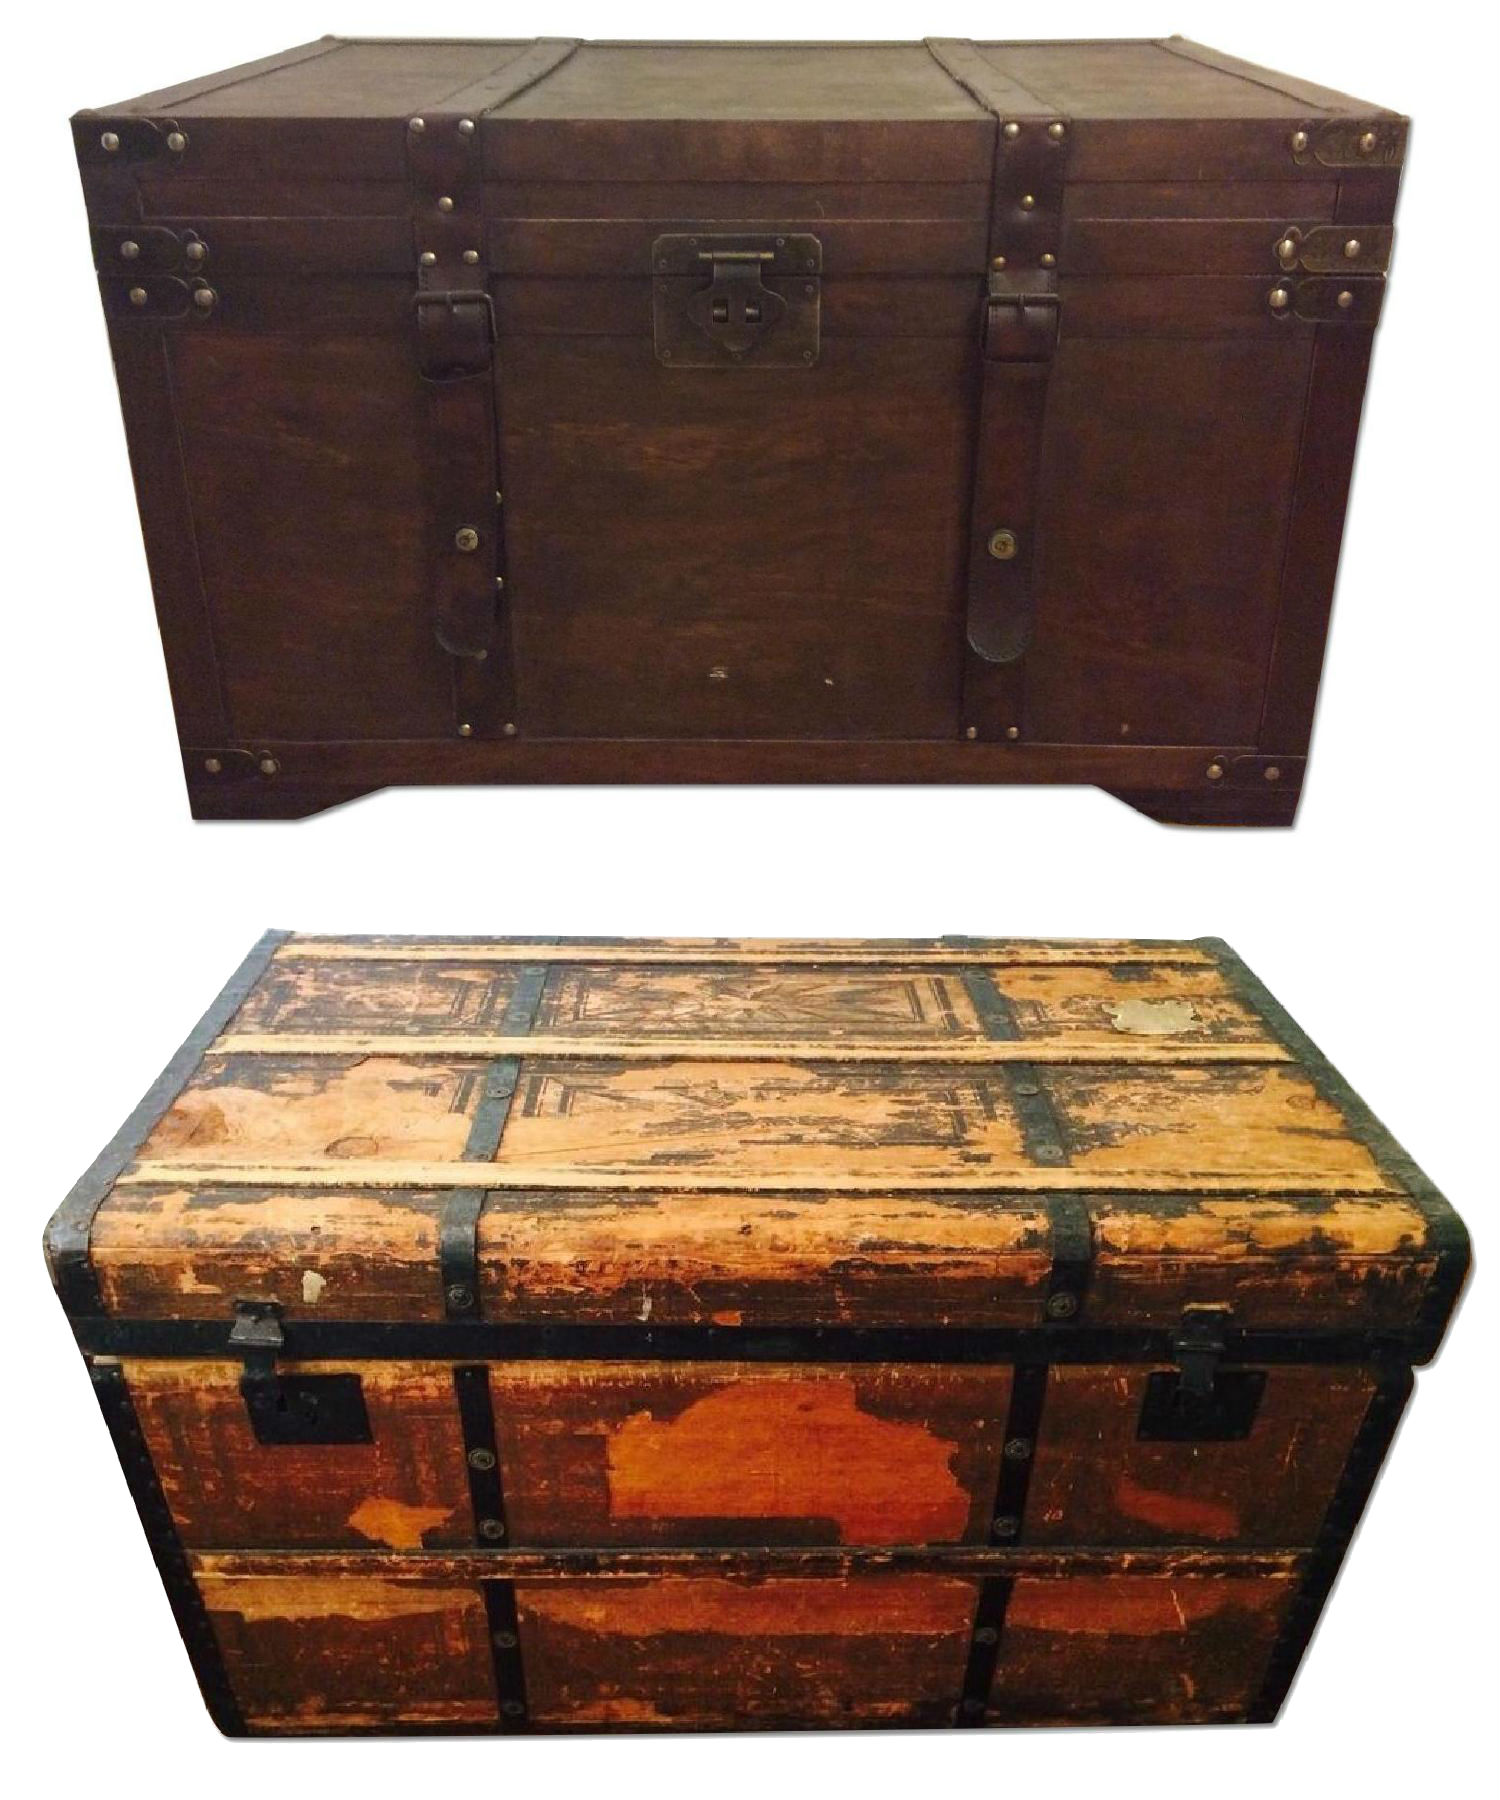 Vintage Military Trunks for Home